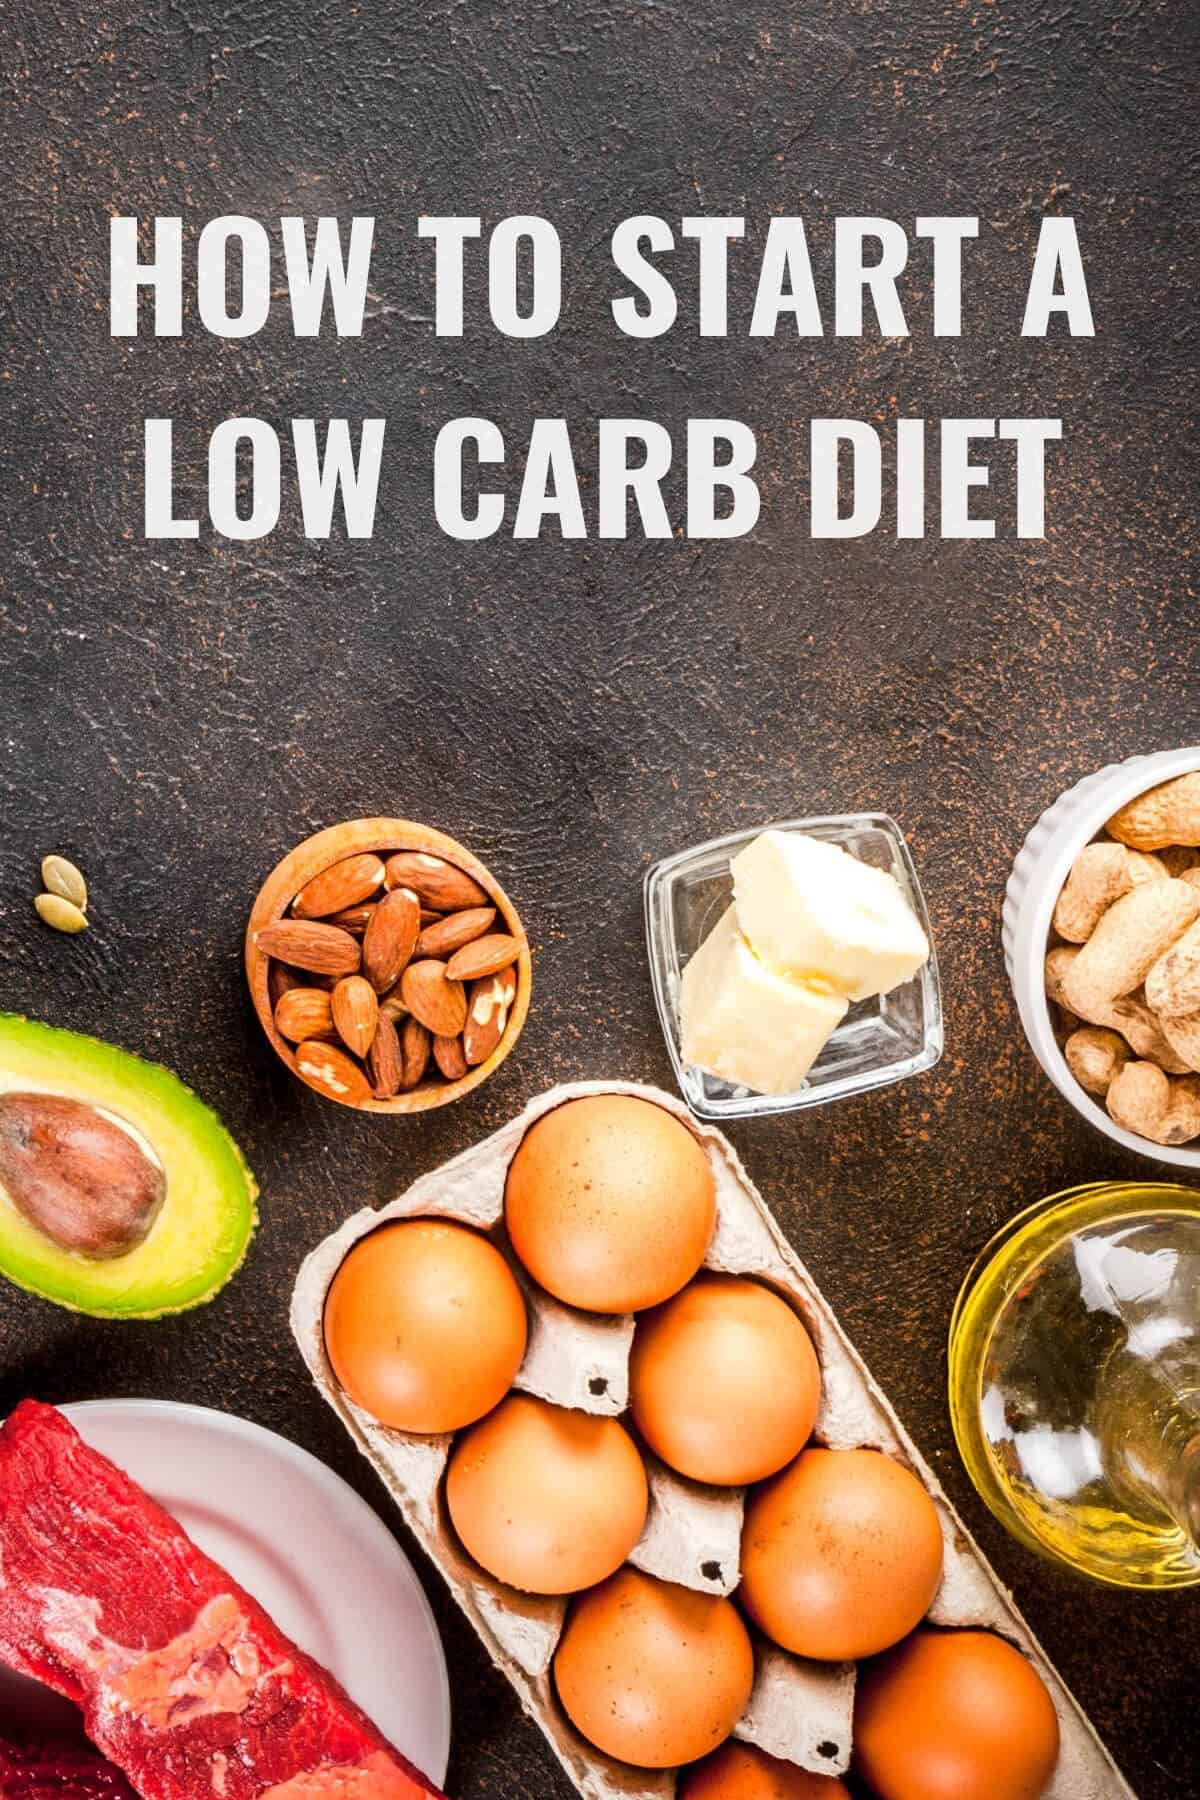 how to start a low carb diet pinterest image